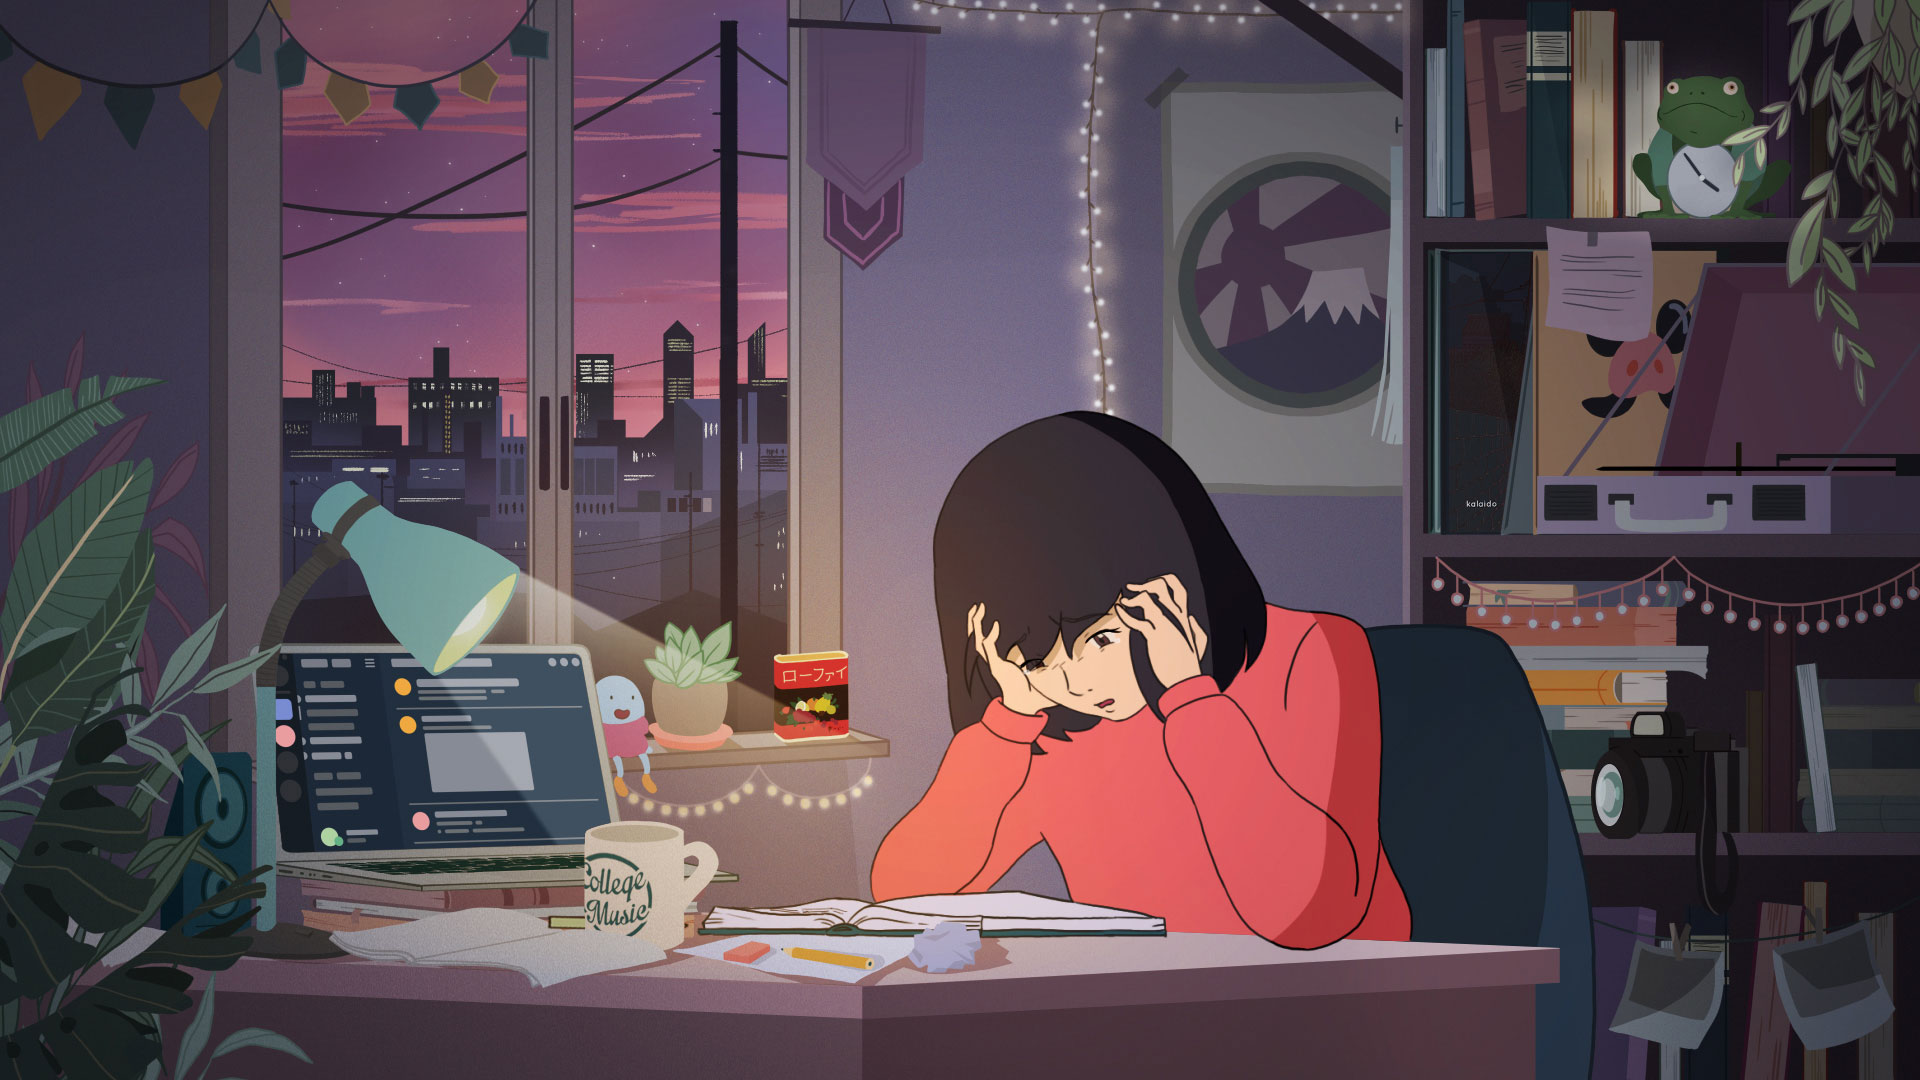 Why 'Study Girl,' Anime Star of an Infinitely Looping Video, Went Missing  This Week | Muse by Clio